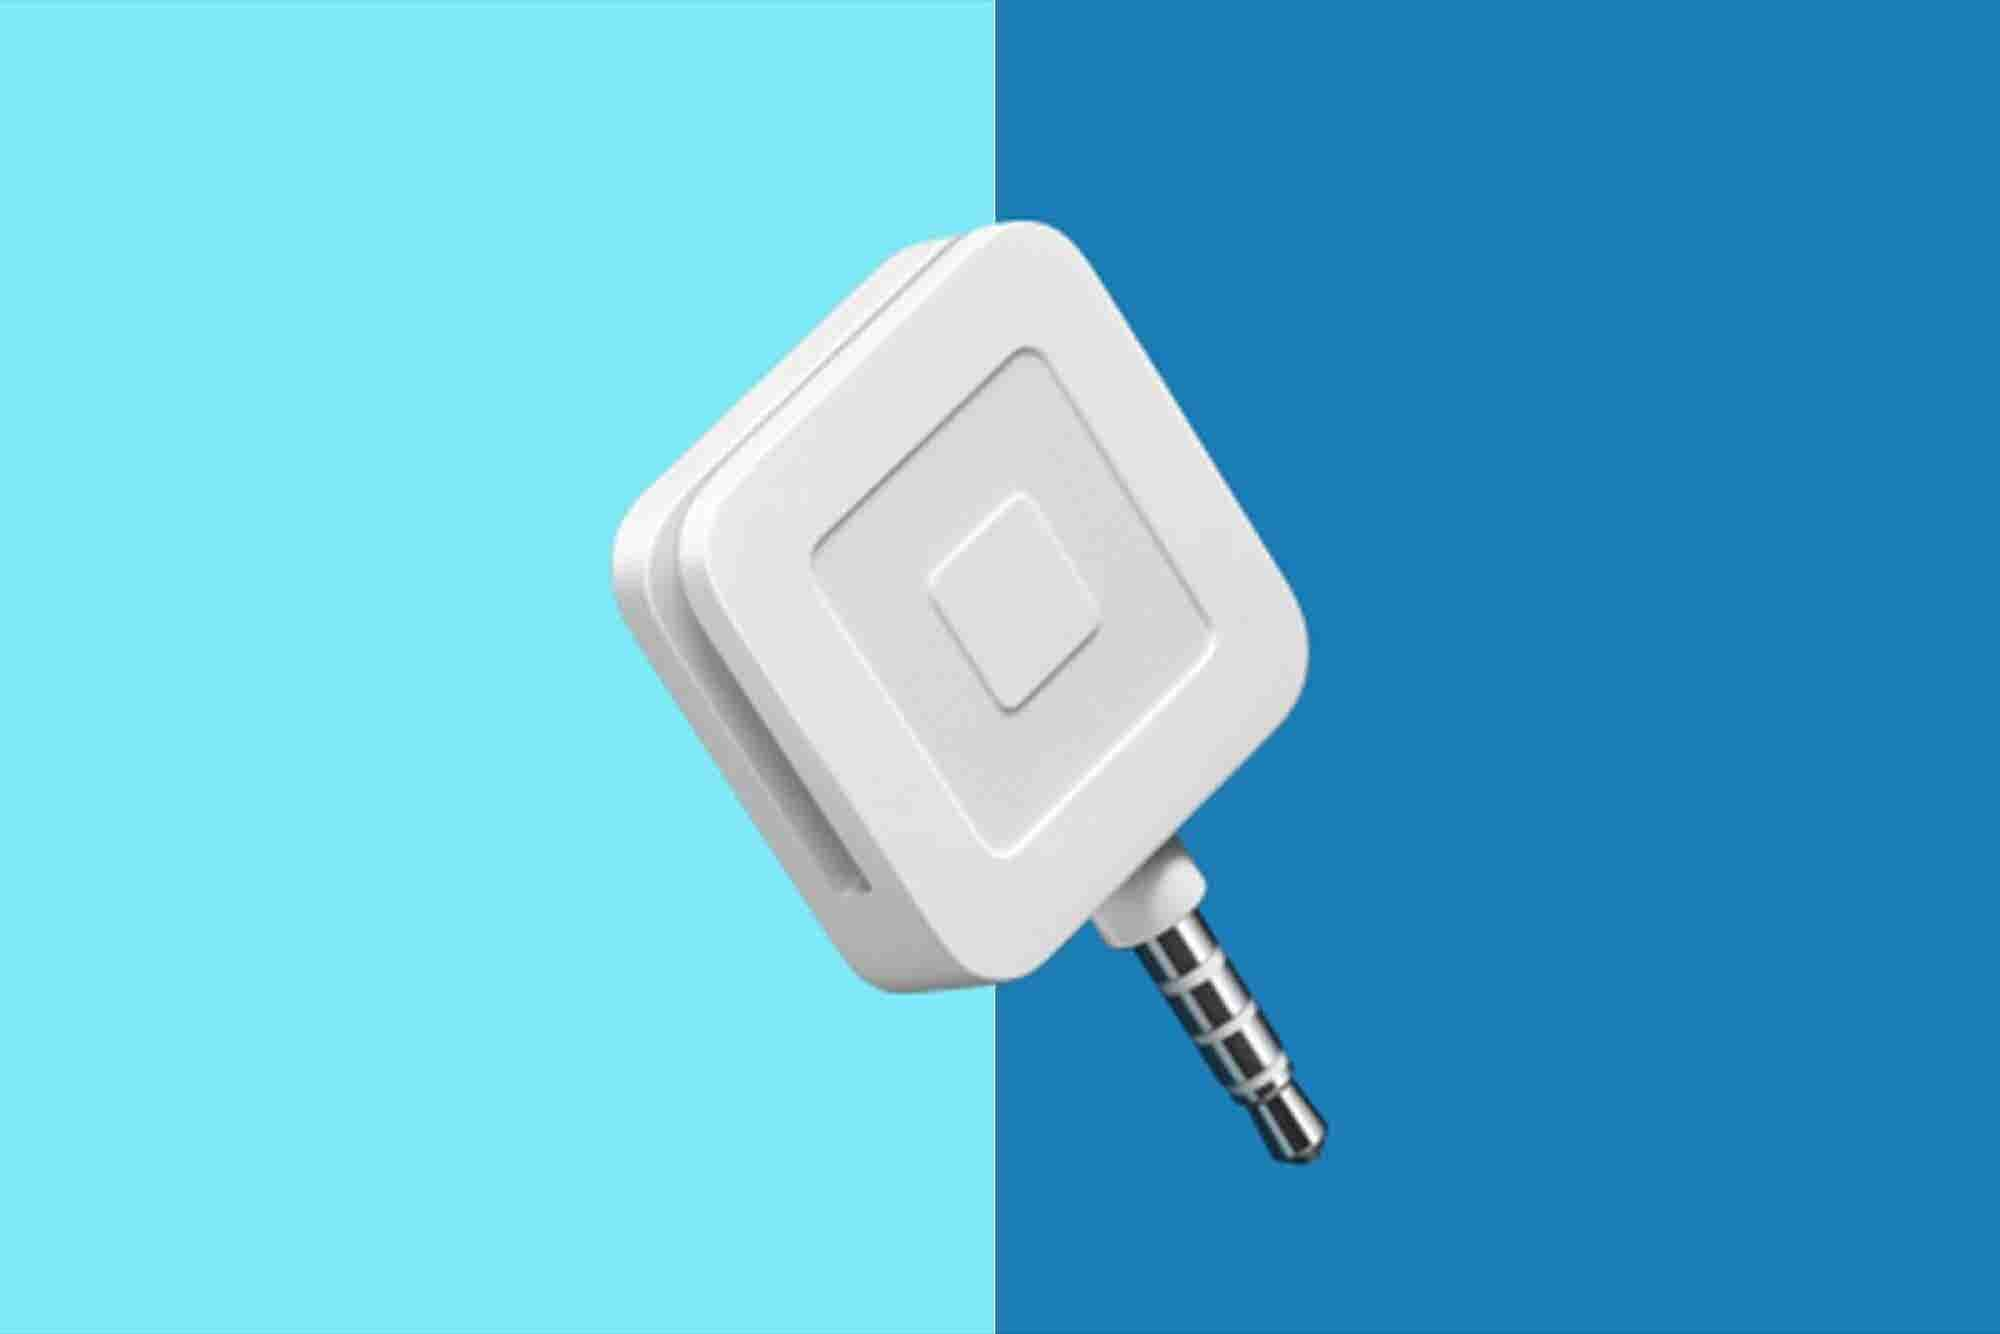 Square Settled Lawsuit With Refuted Co-Founder for $50 Million